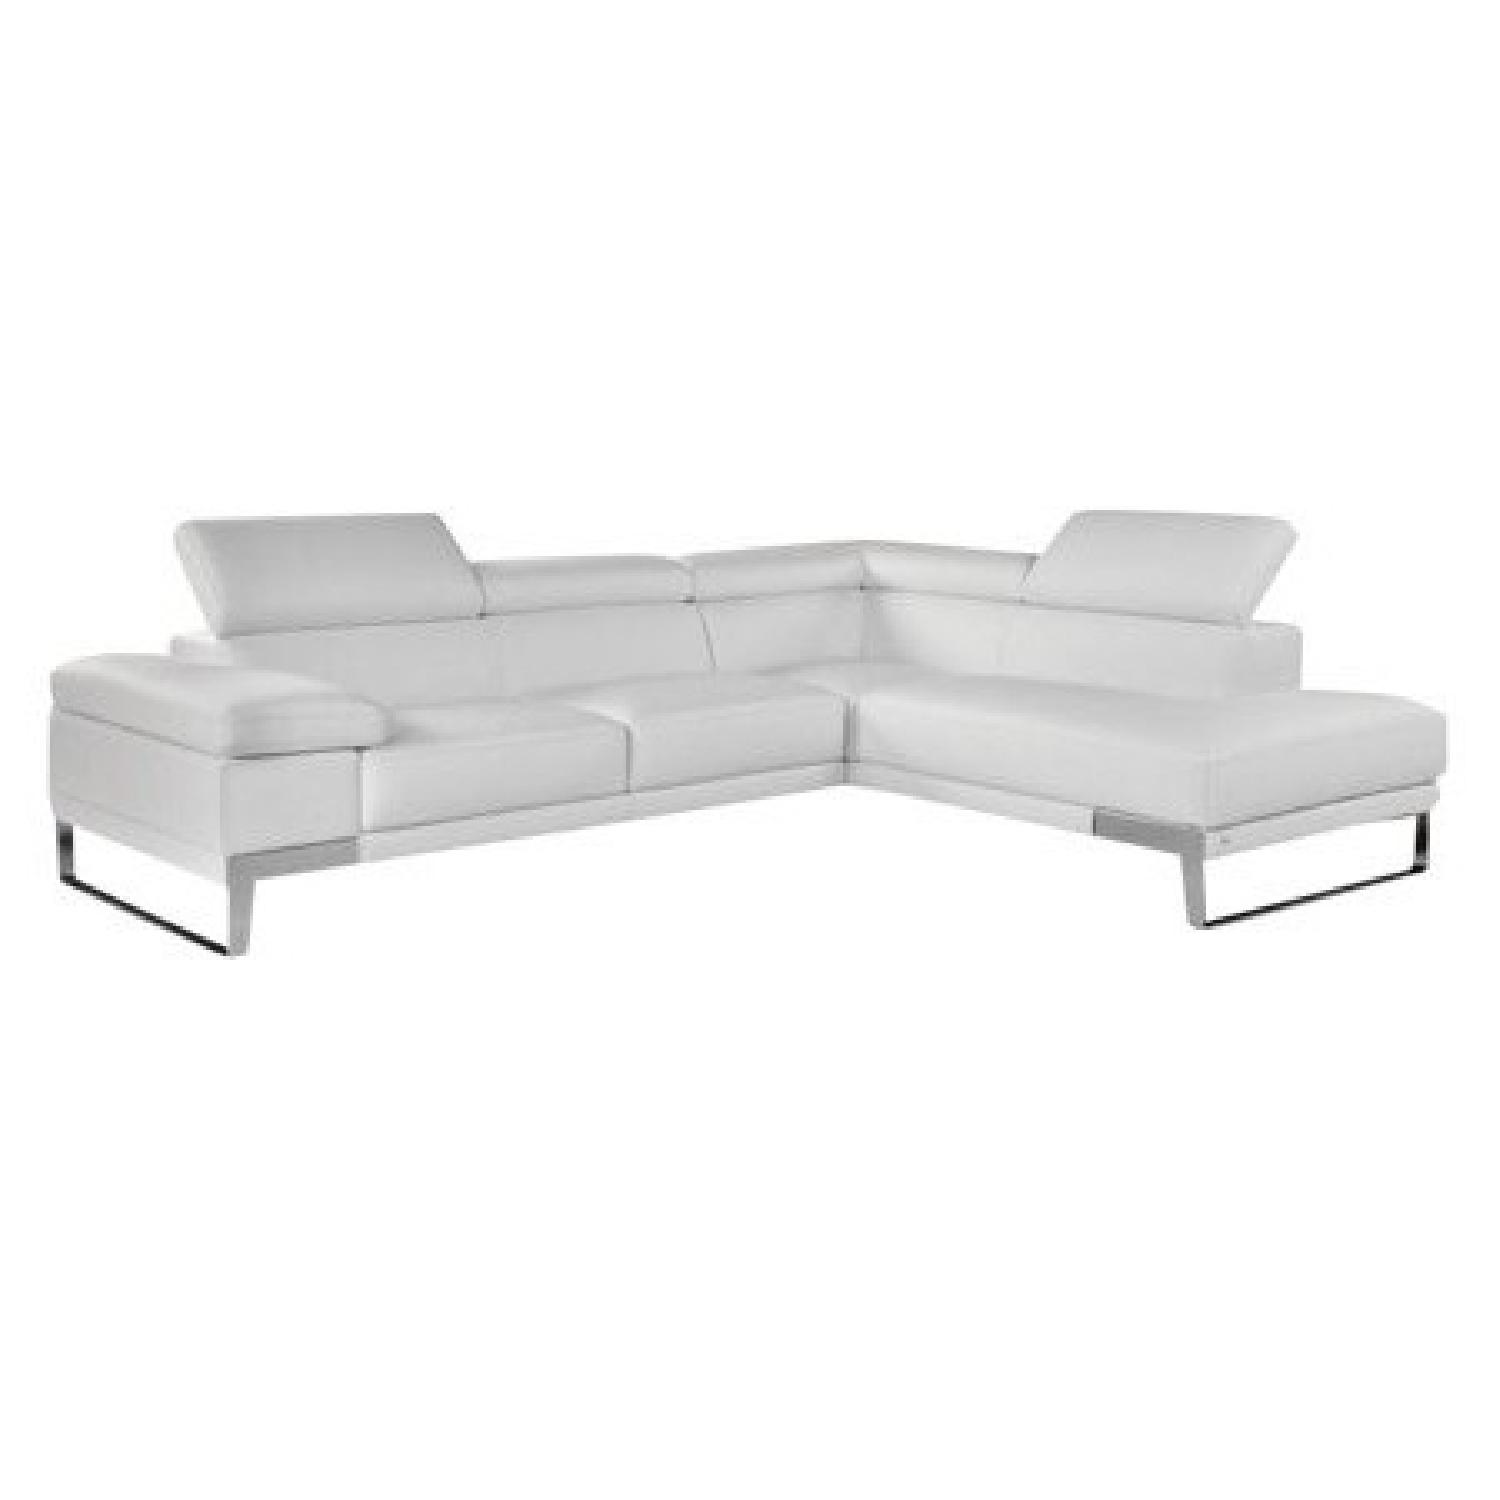 White Leather Couch Nicoletti Domus White Leather Sectional Sofa